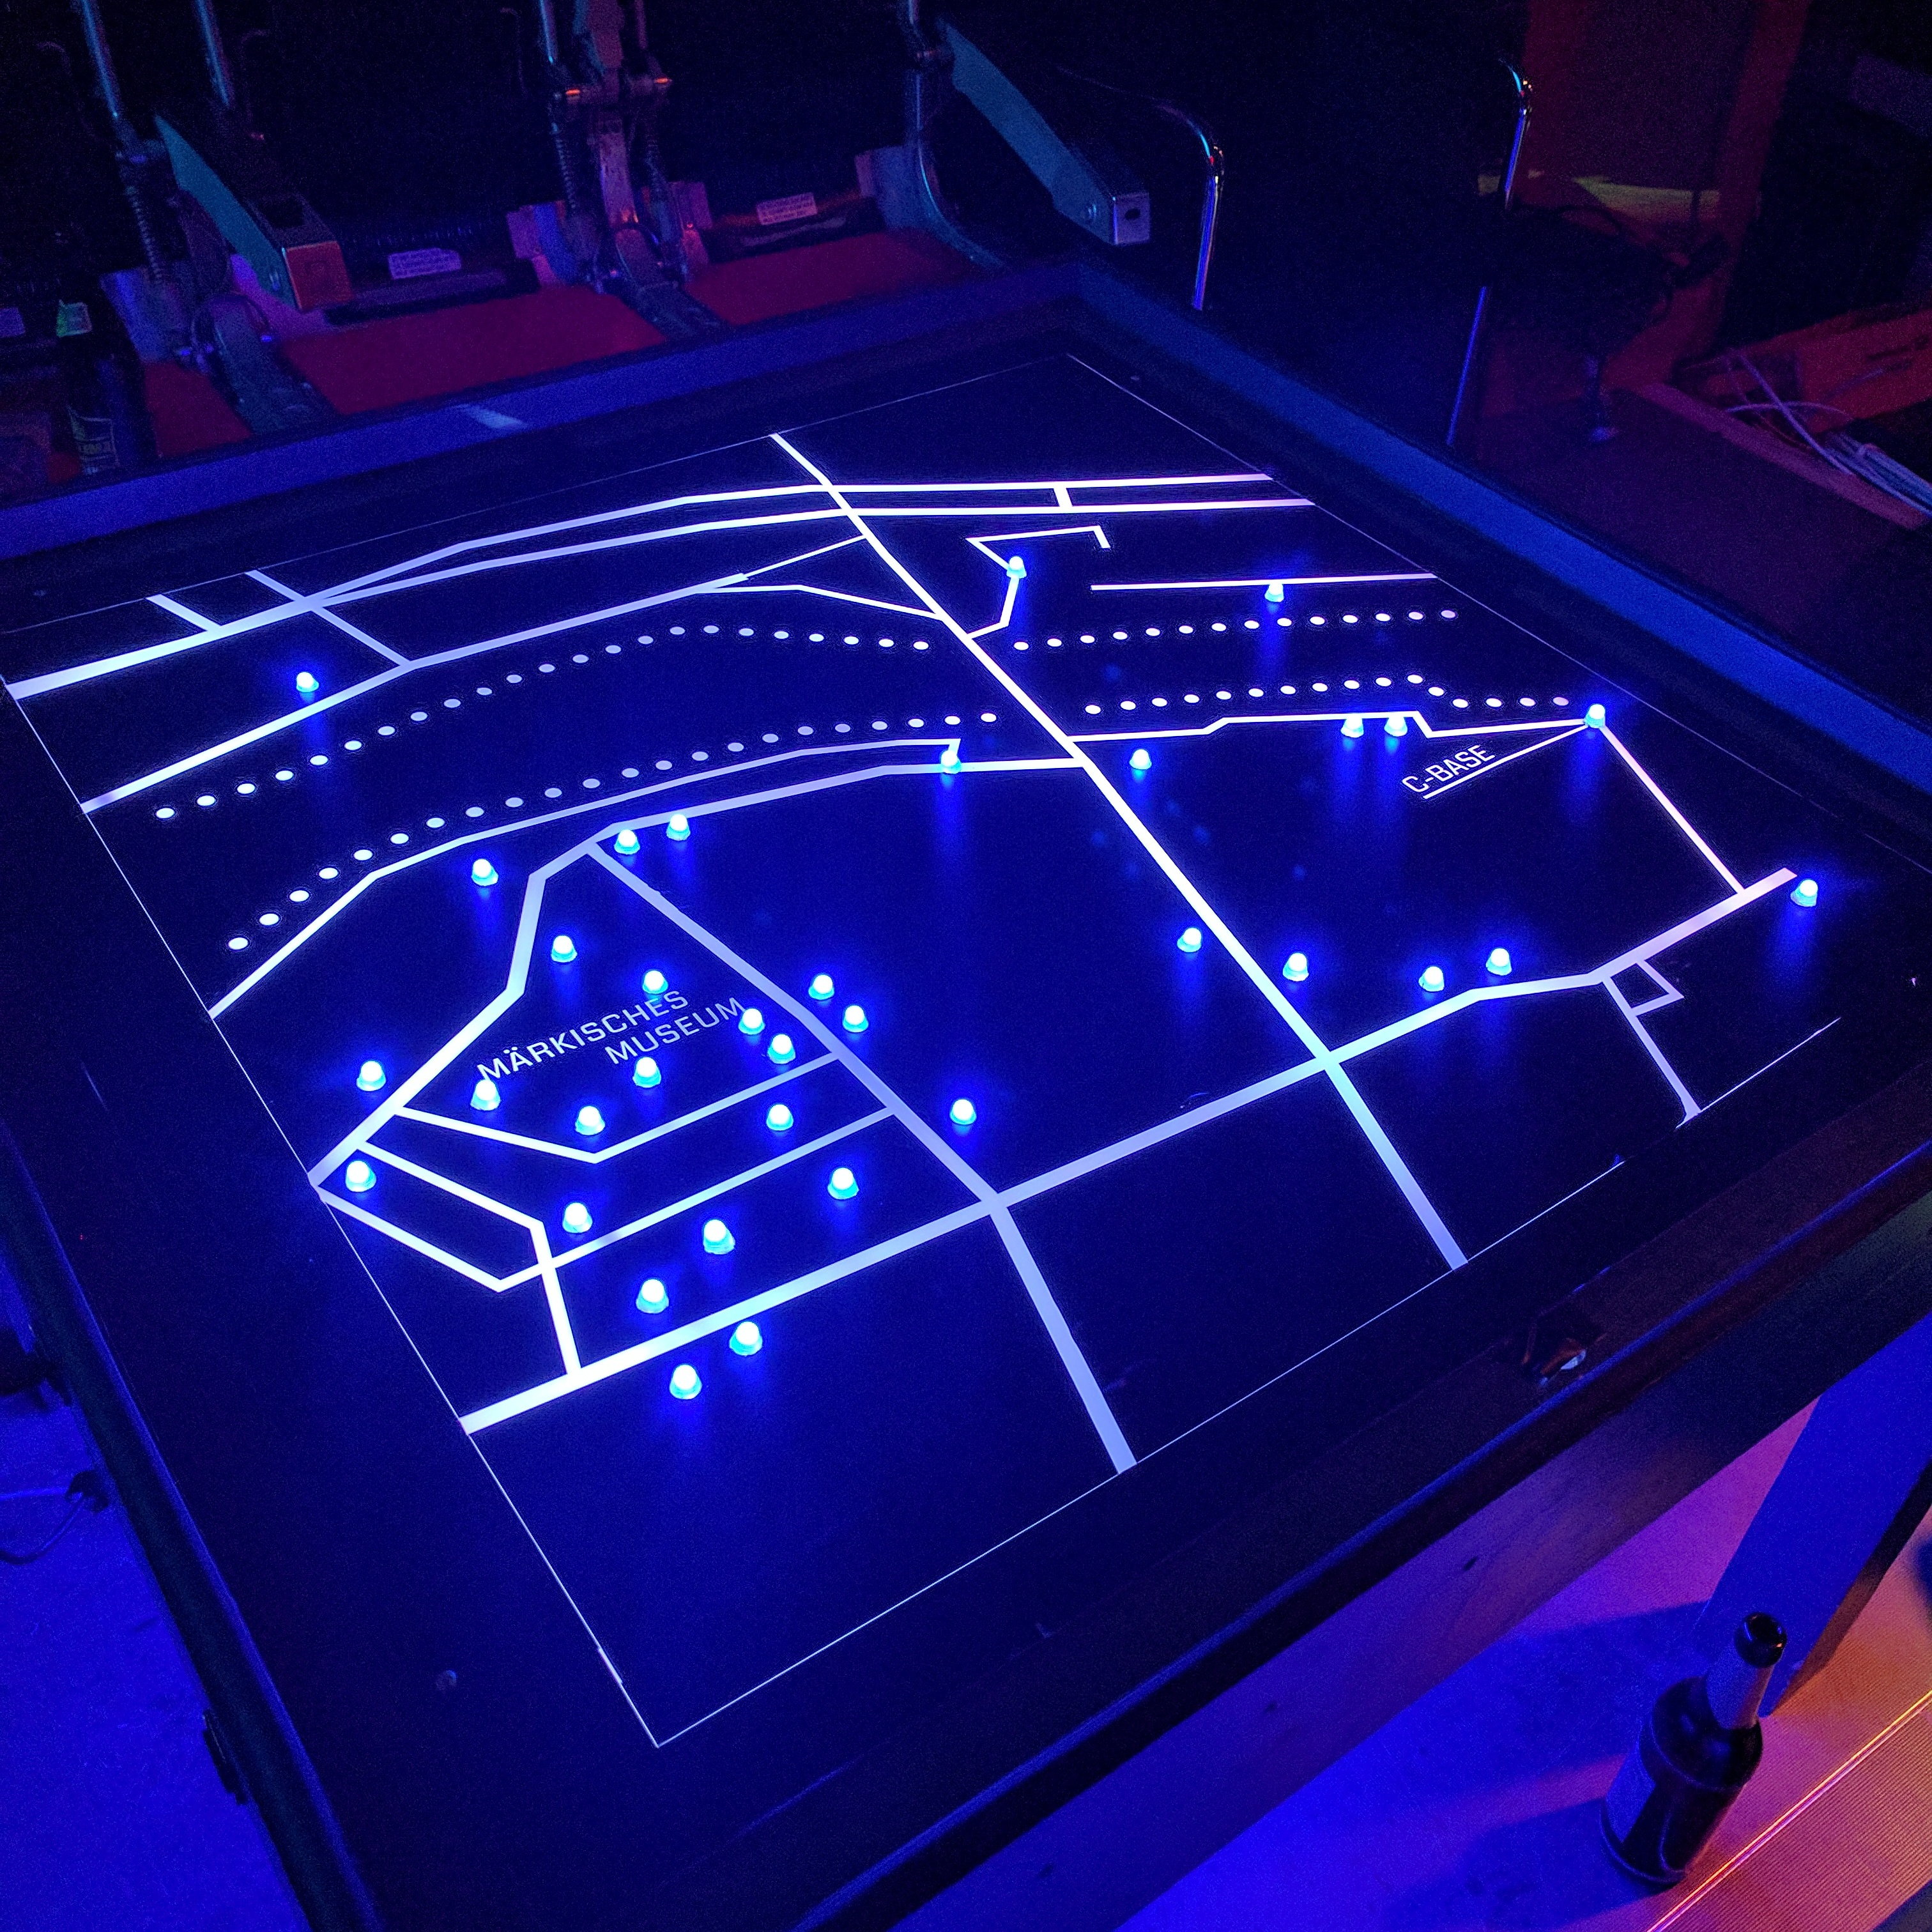 Ingress Table in action